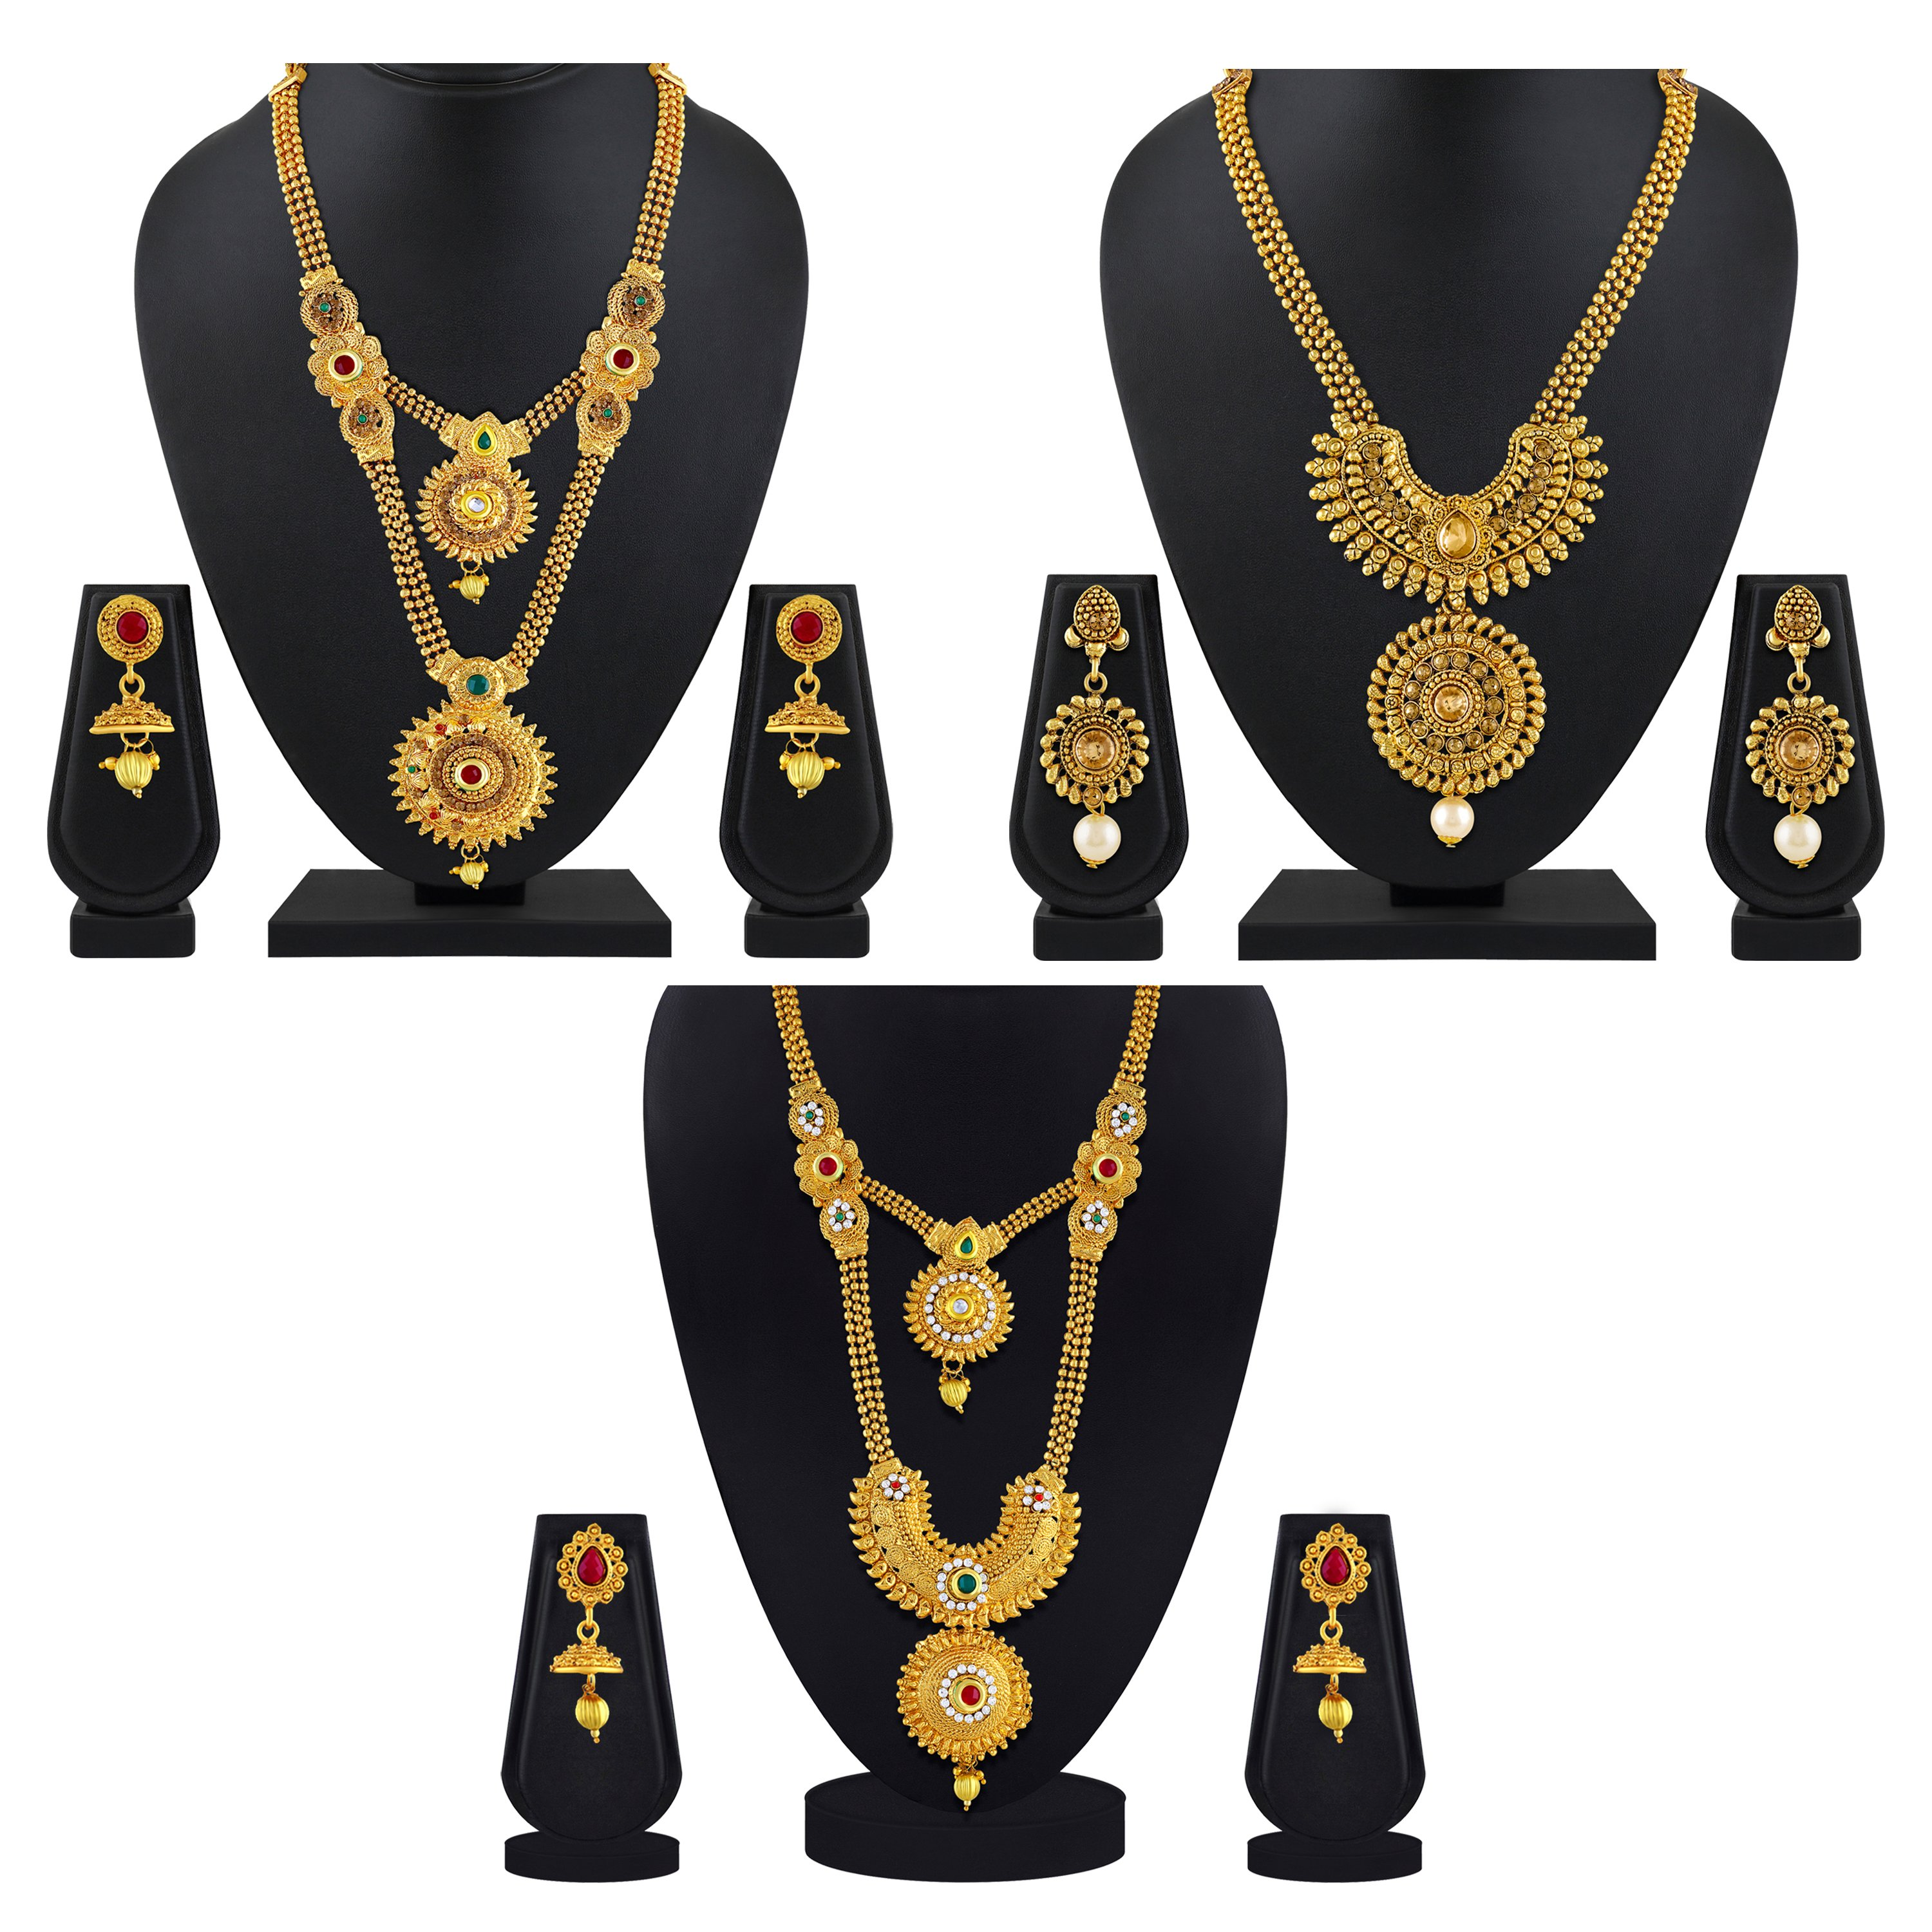 Apara Bridal Pearl Lct Stones Gold Necklace Set Jewellery: Golden Finish To Your Look Indian Wedding Jewellery In